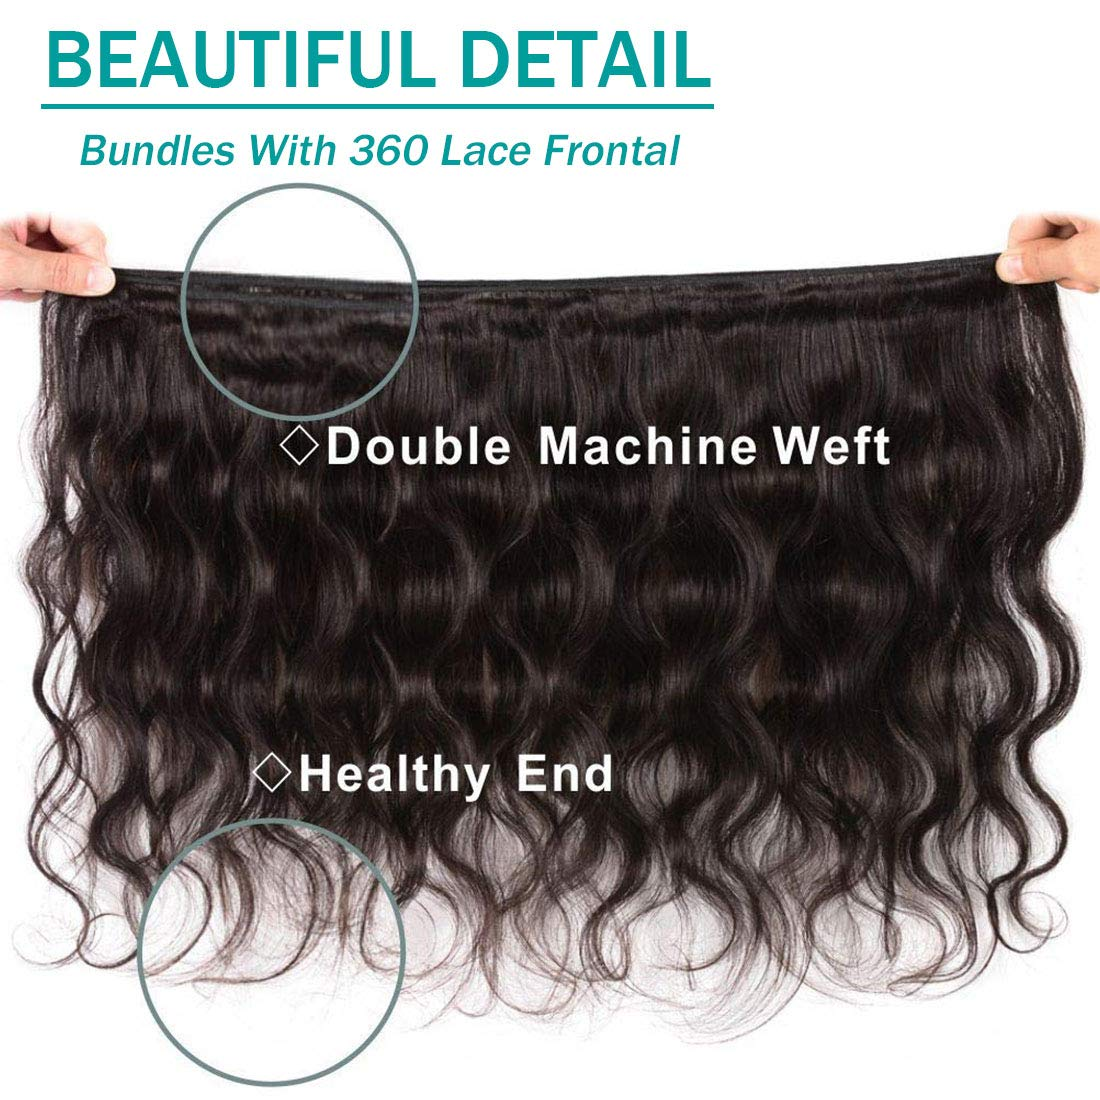 Hair Extensions & Wigs Ishow 360 Lace Frontal Closure With Bundles Malaysian Body Wave Human Hair 3 Bundles With Closure Non-remy Hair Extension Exquisite Craftsmanship; Human Hair Weaves